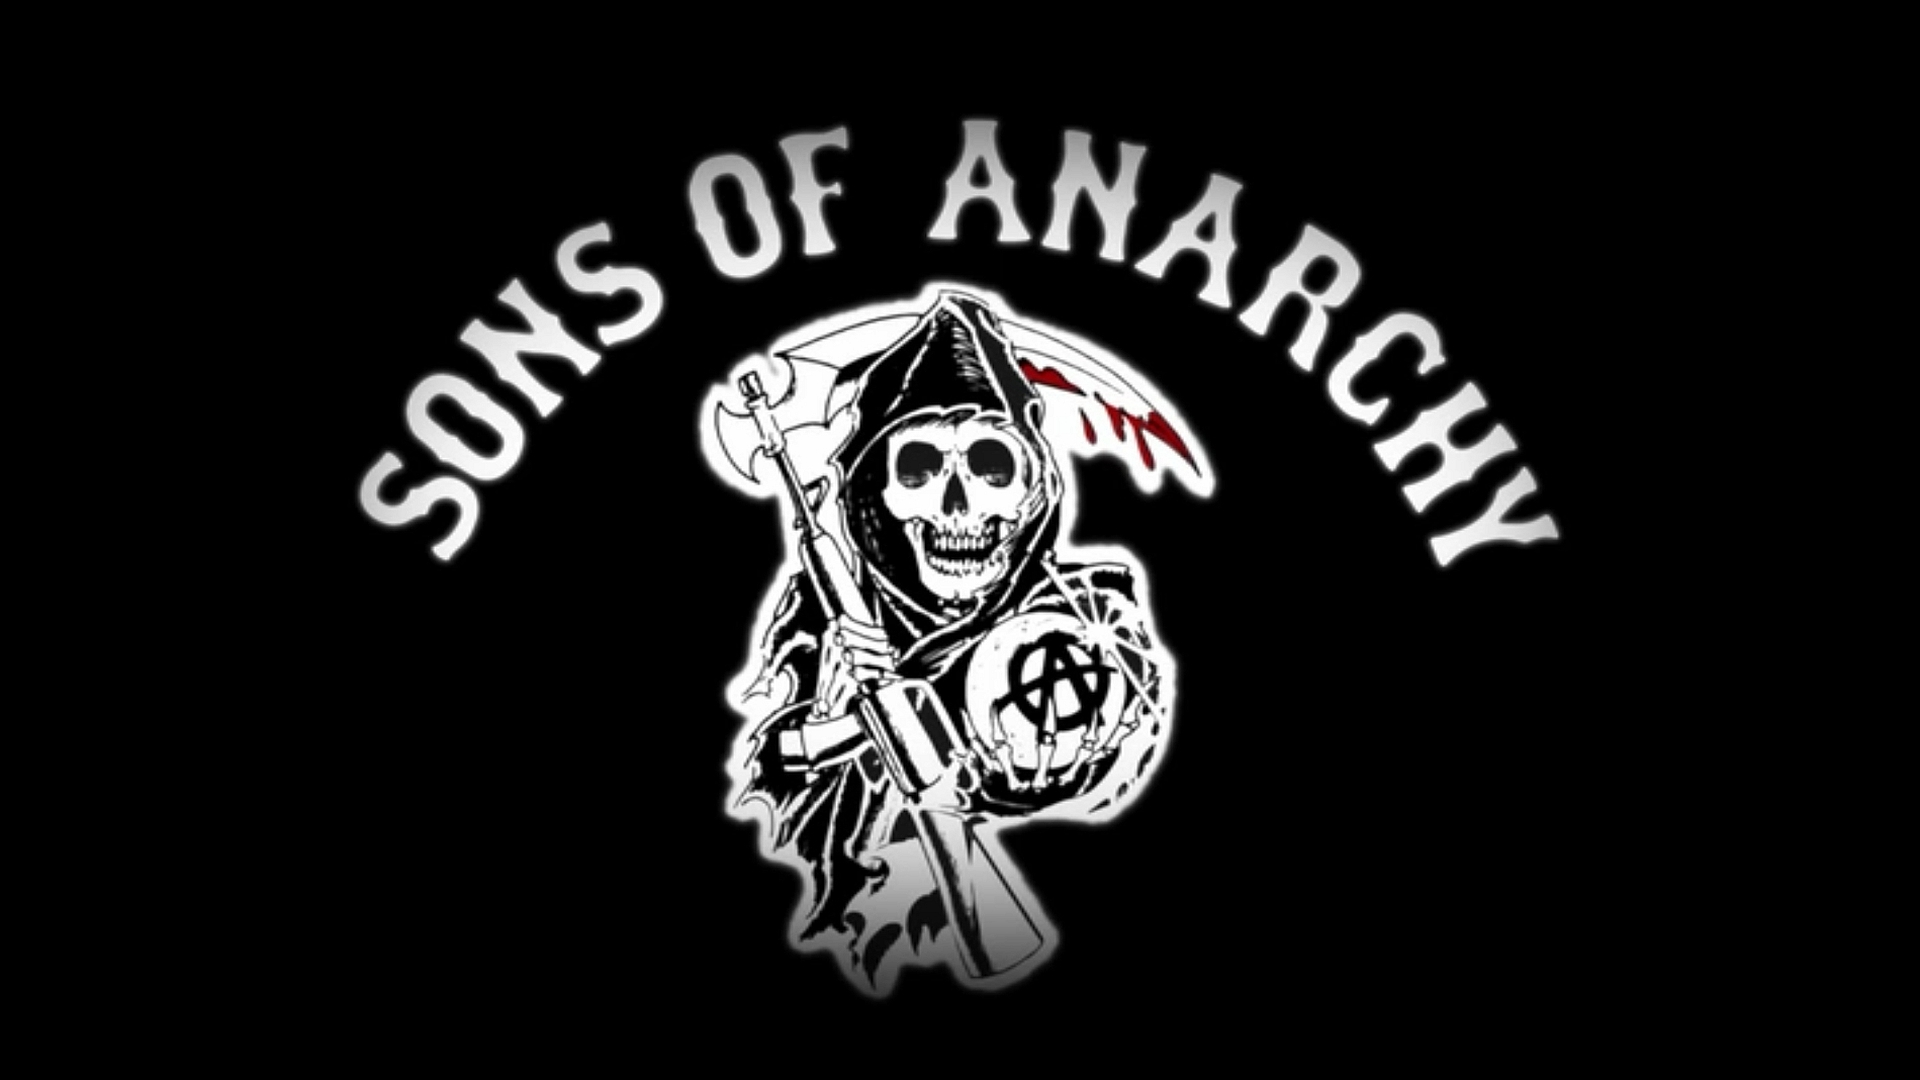 Sons Of Anarchy Wallpaper Free